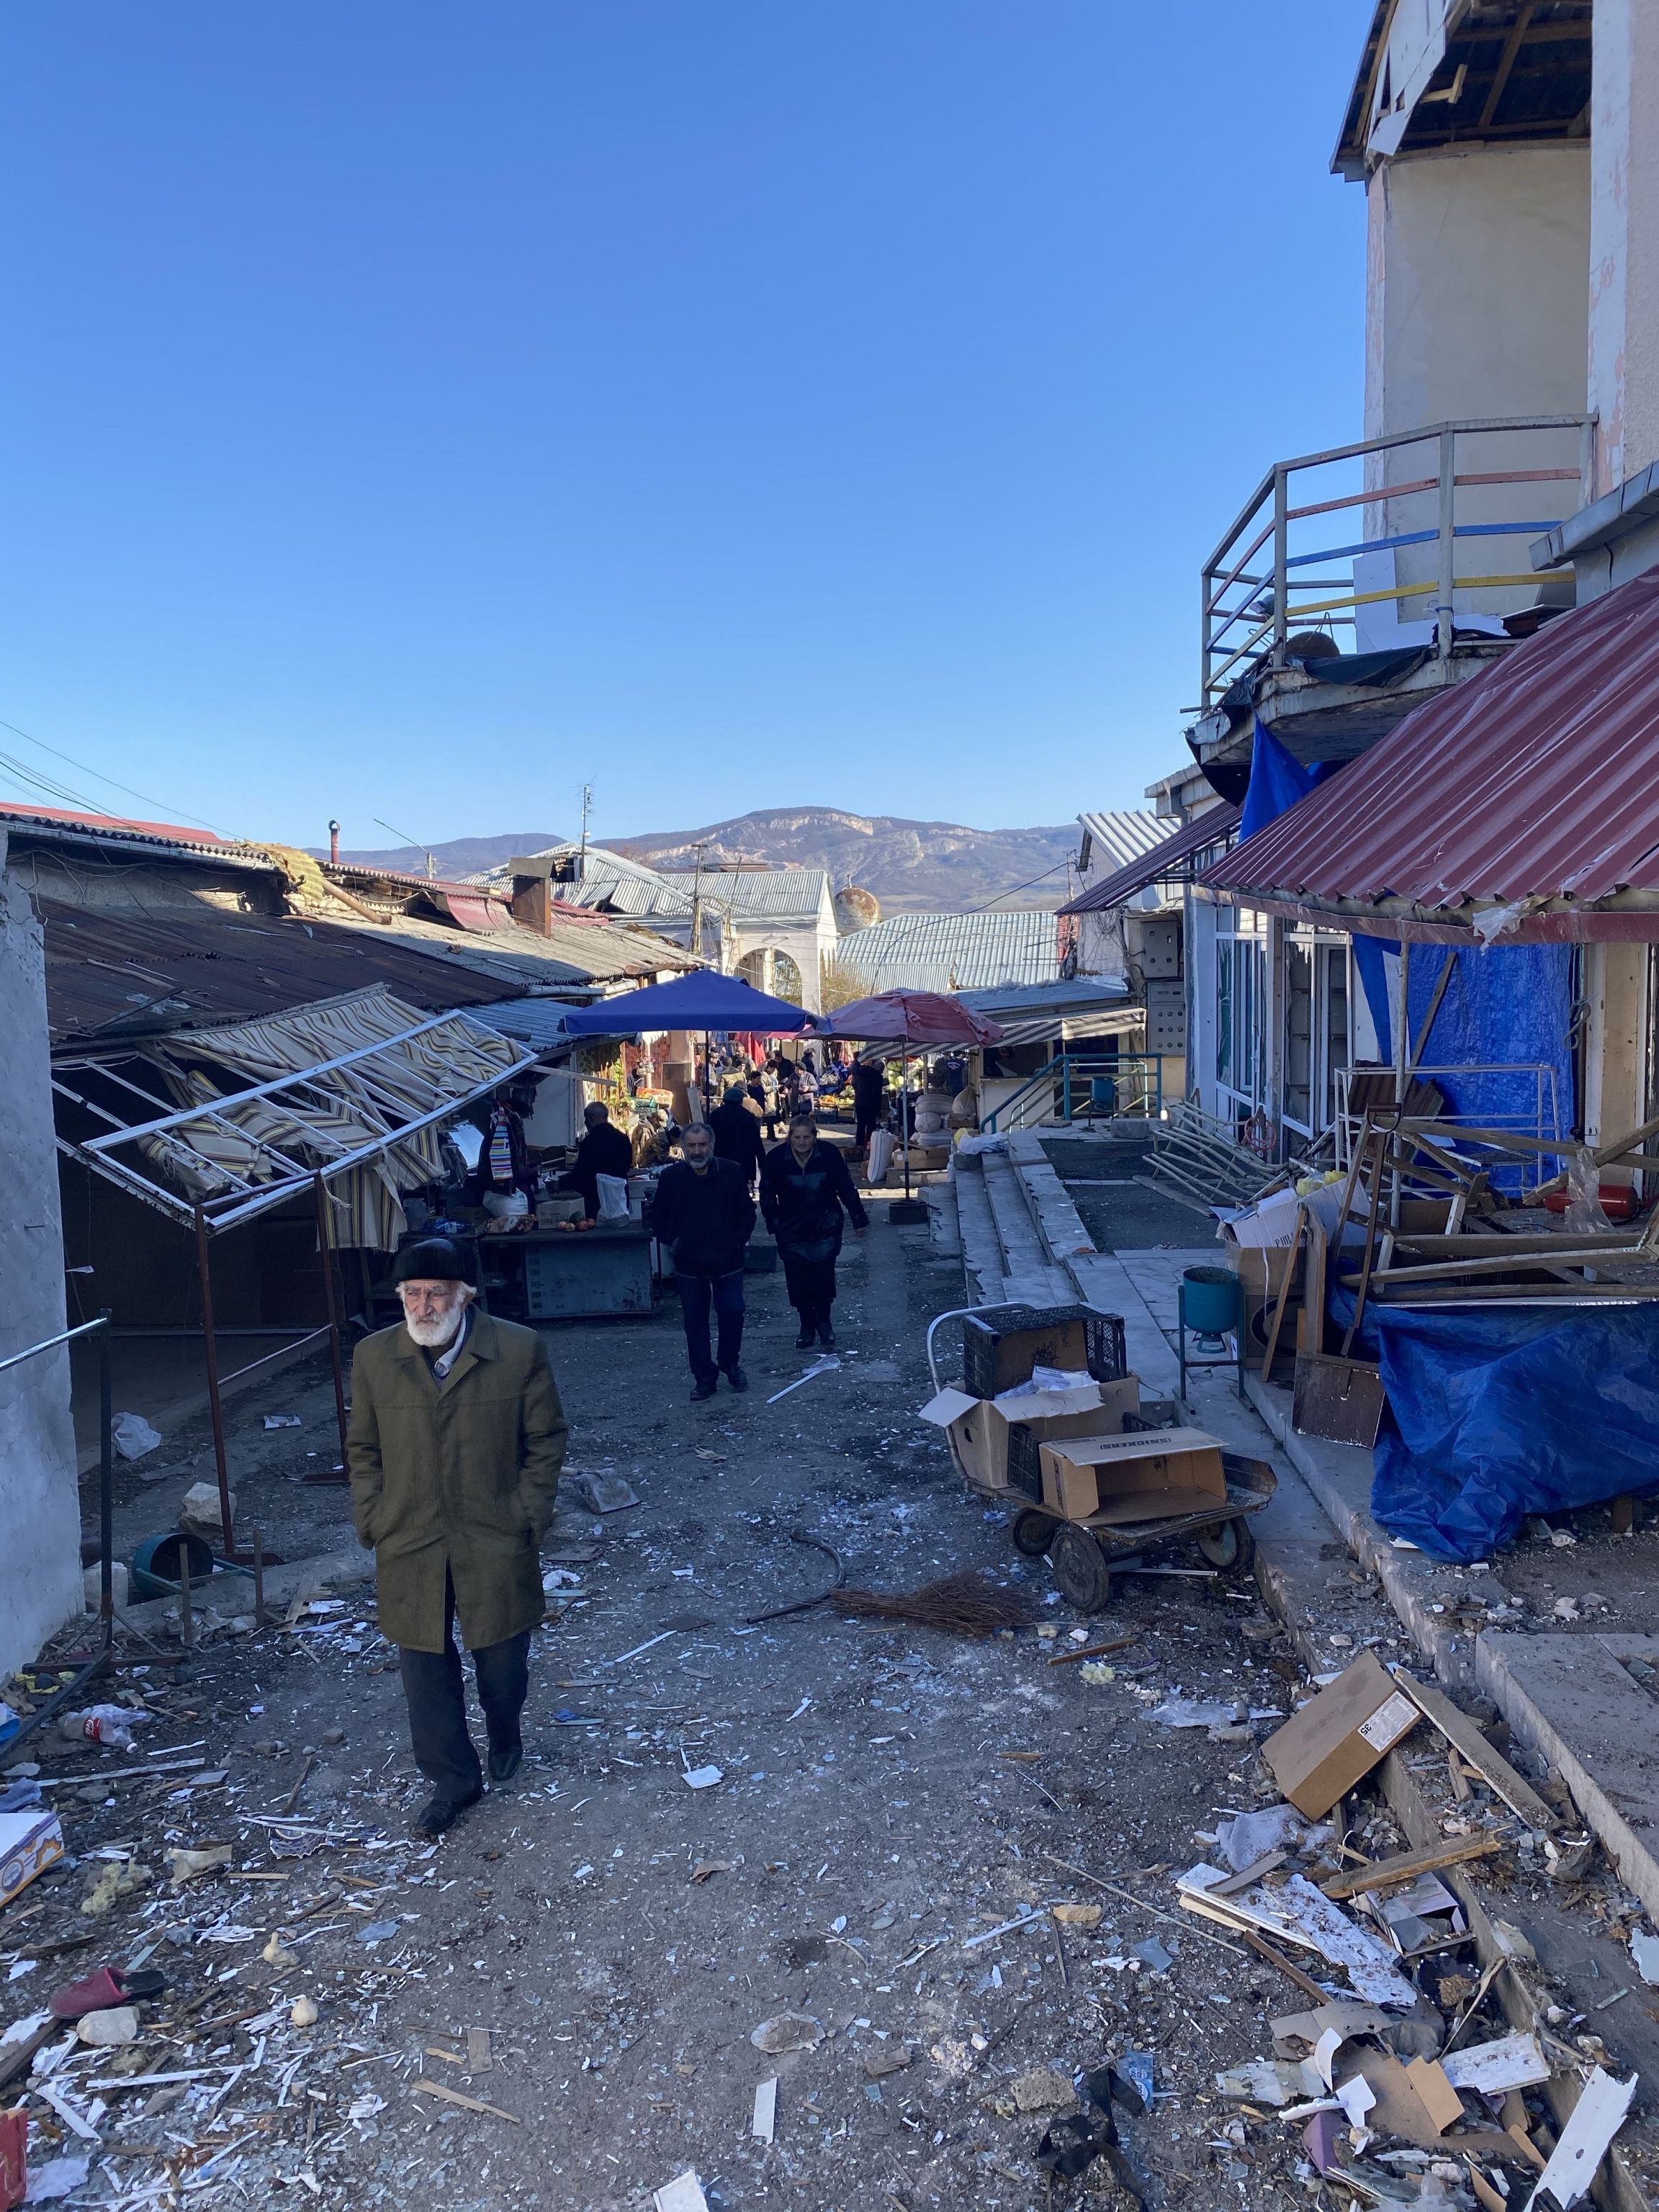 Business slowly restarts in the market of Stepanakert, the de facto capital of Nagorno-Karabakh,after being shelled during the war.